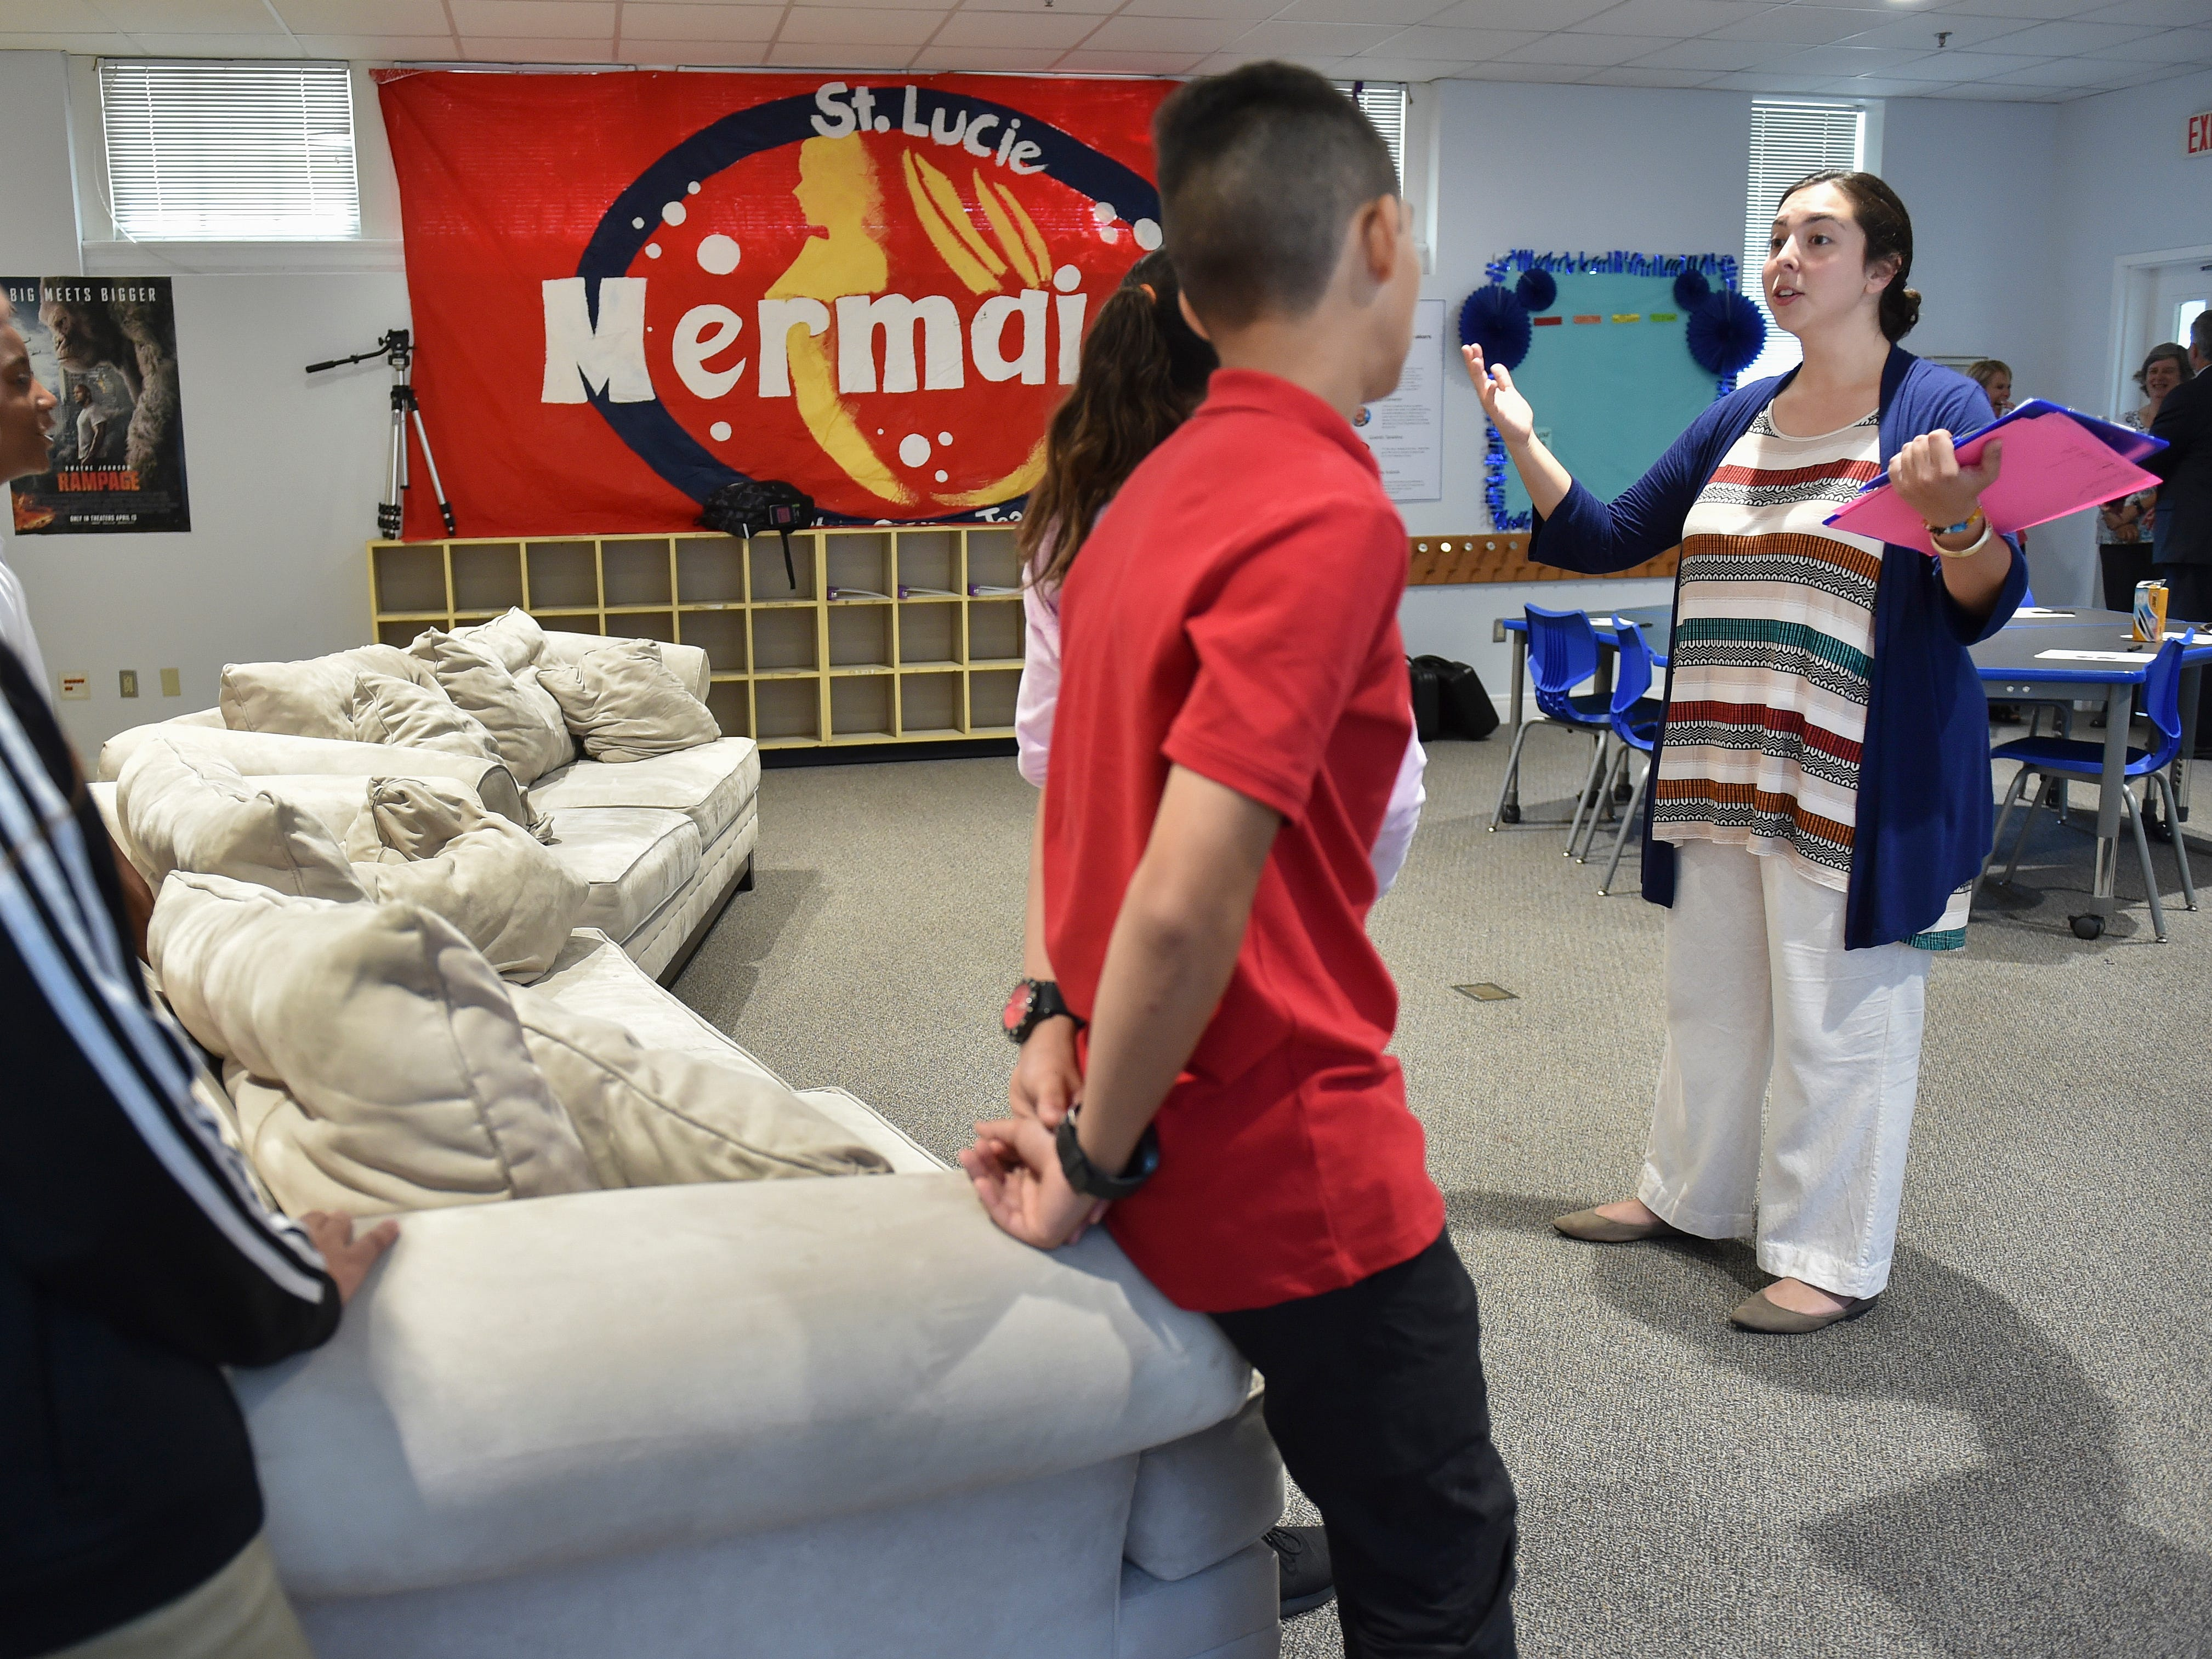 """Shaina Feldman, media arts teacher at the new Creative Arts Academy of St. Lucie, talks with her middle school students, introducing them to her class on the first day of school on Monday, August 13, 2018 in Fort Pierce. """"I'm so lucky to be a part of this. What a great opportunity to be a part of creative arts in my hometown, it's a dream,"""" Feldman said. """"Film is the language of the modern world so I'm teaching kids how to navigate and become critical thinkers in all of the media they consume today, and they will leave my class creating."""""""